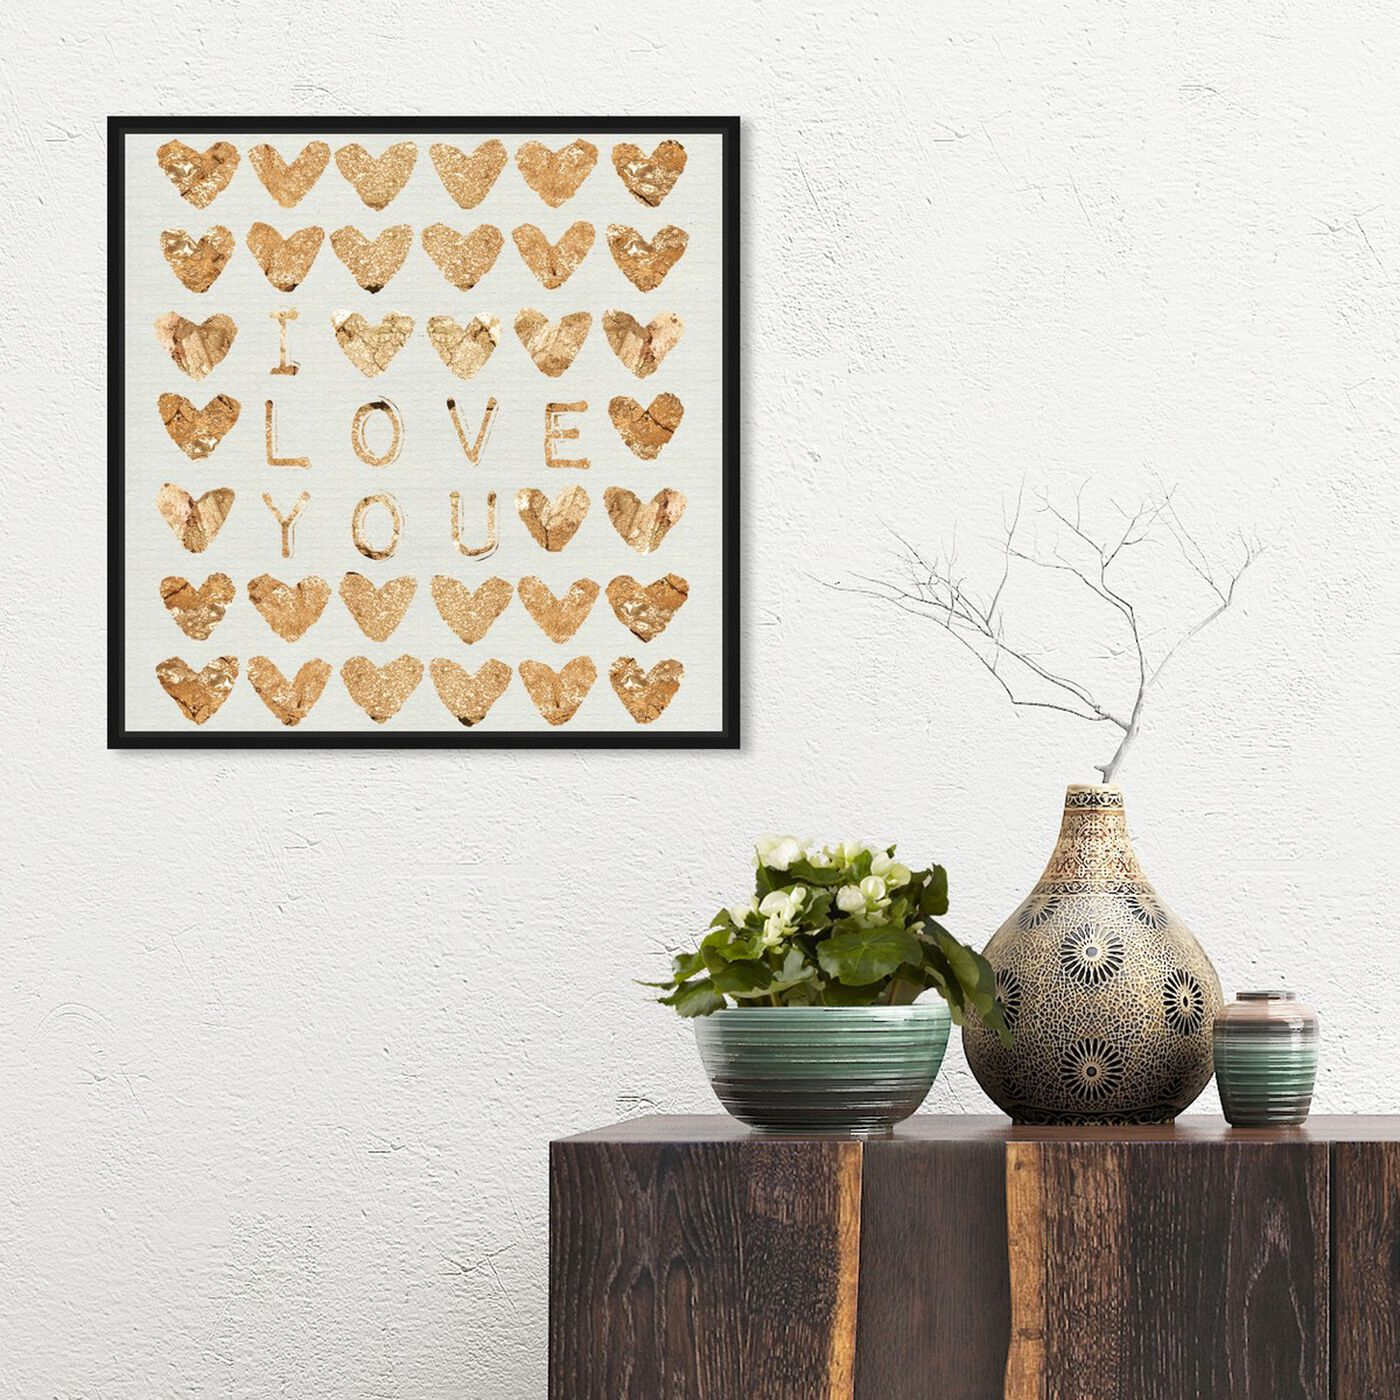 Hanging view of I Love You Gold featuring fashion and glam and hearts art.